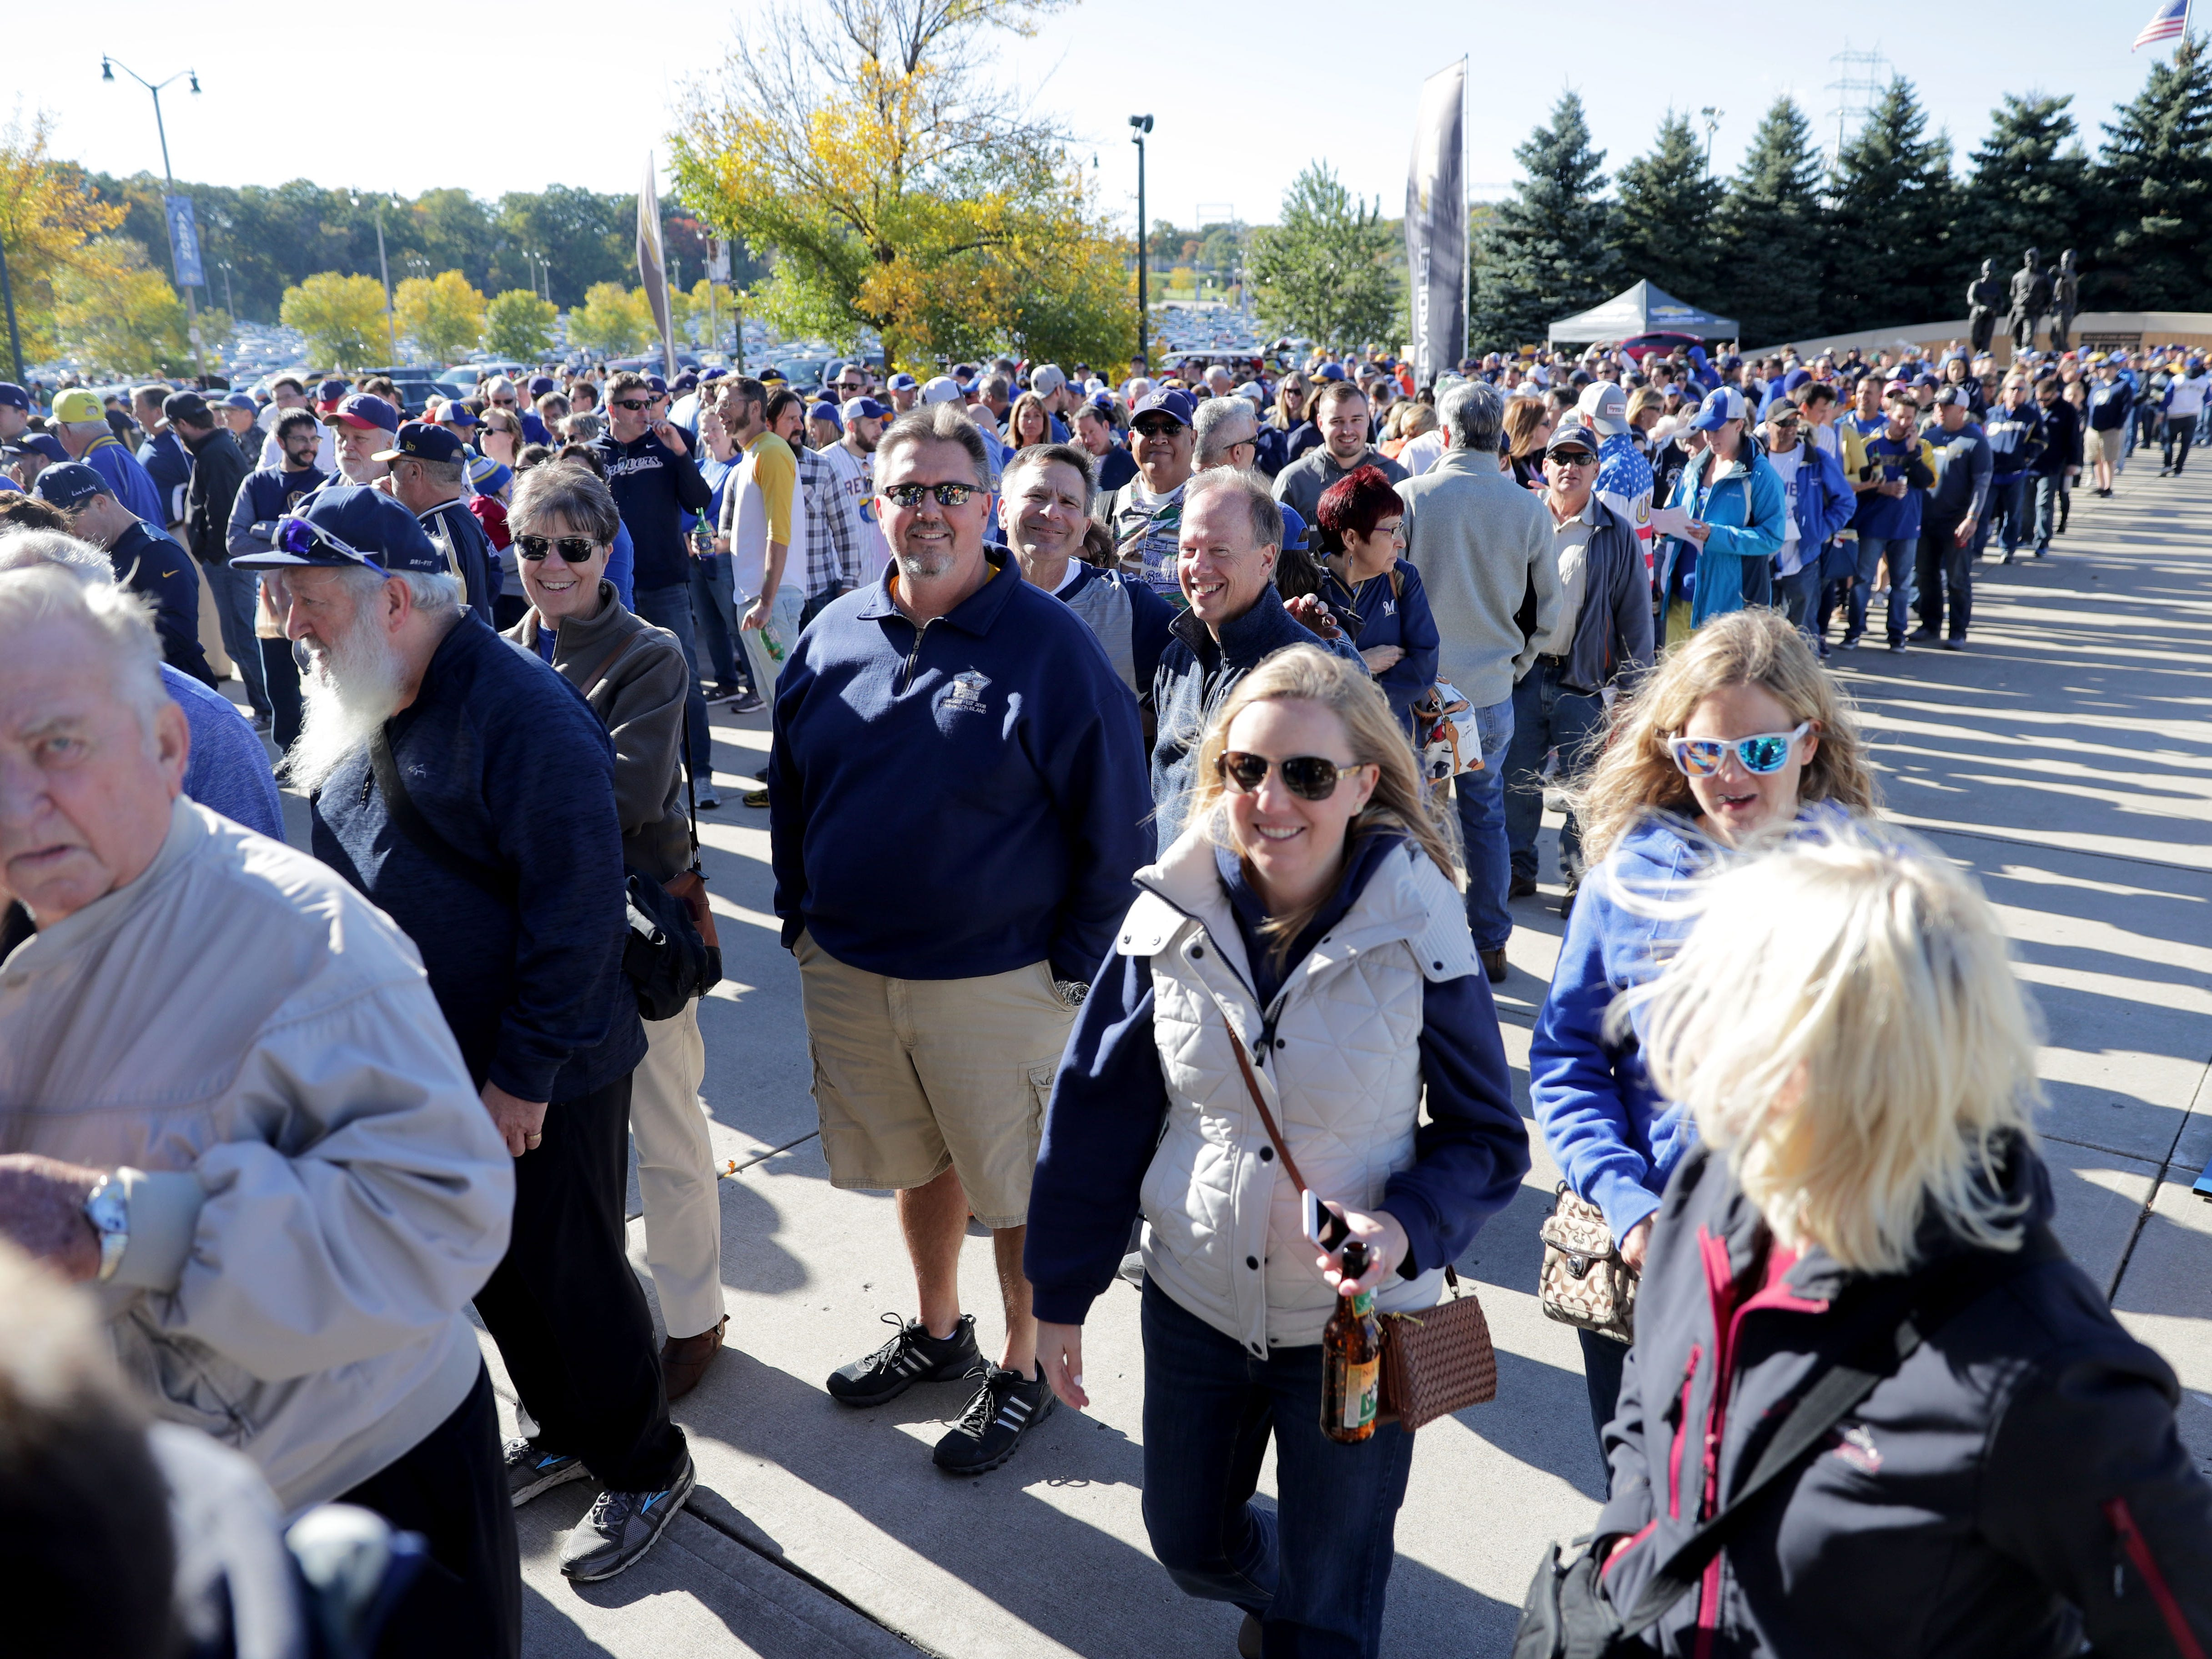 People line up to get into Miller Park before the Milwaukee Brewers' National League Divisional Series game against the Colorado Rockies.